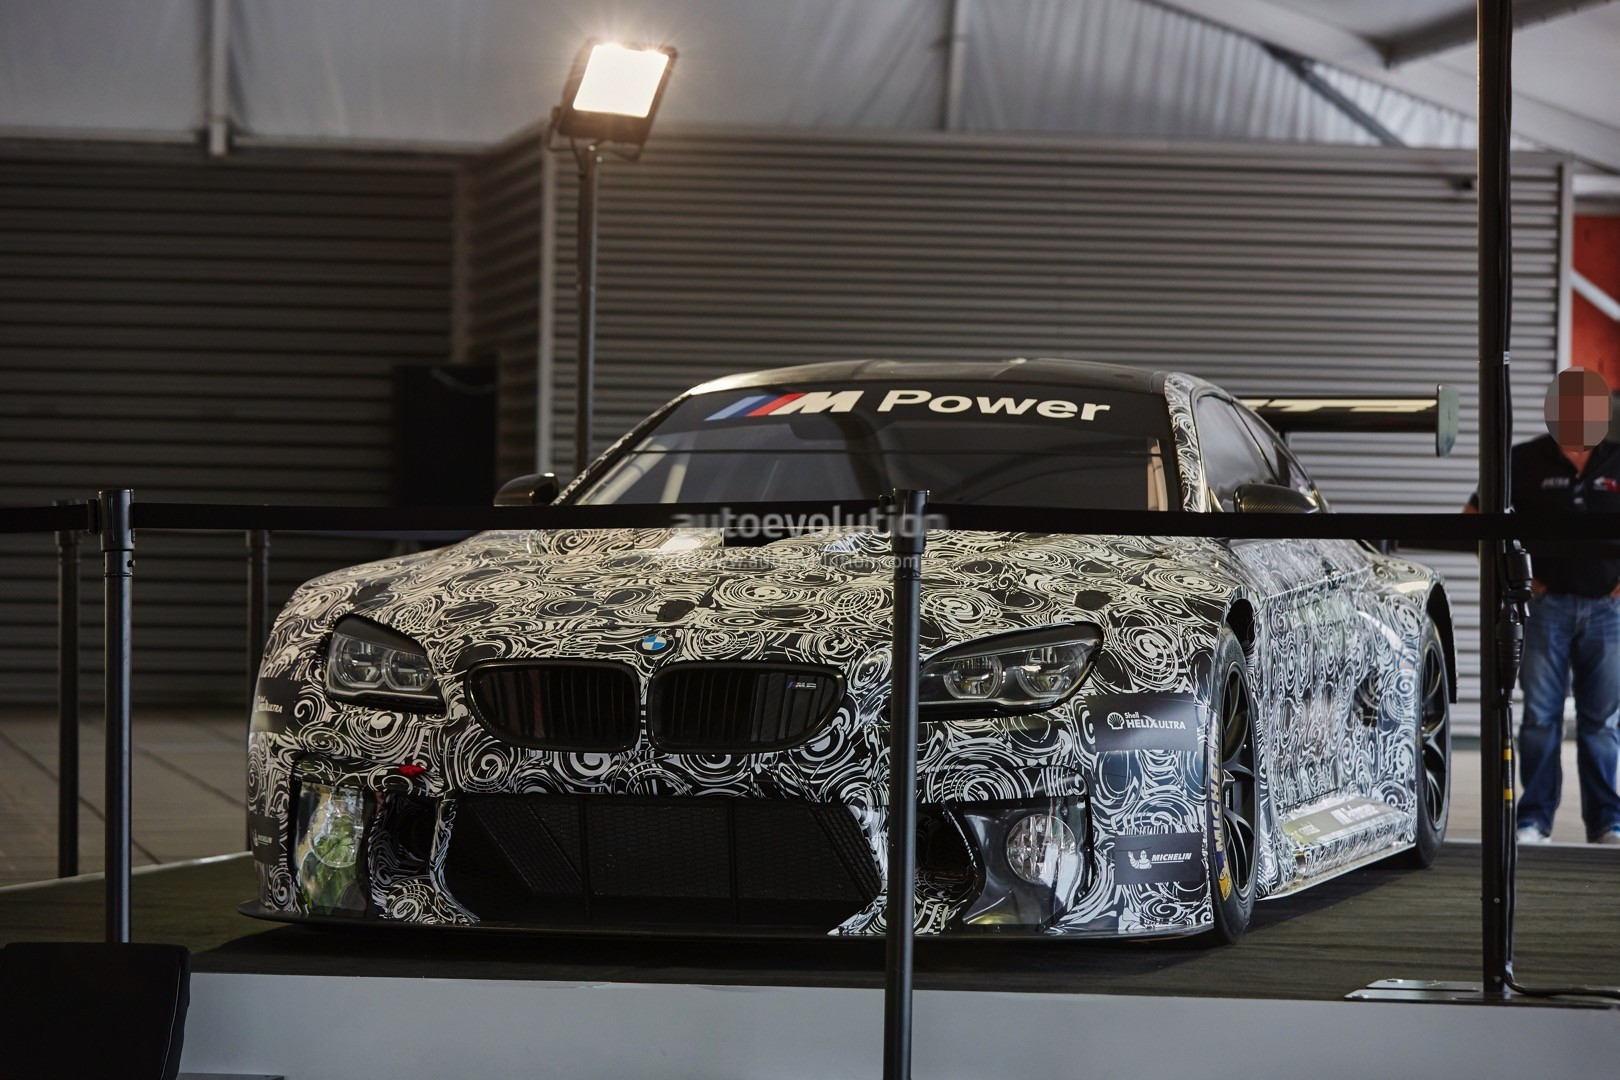 2016-bmw-m6-gt3-caught-on-camera-at-the-spa-francorchamps-24-hour-race-photo-gallery_3